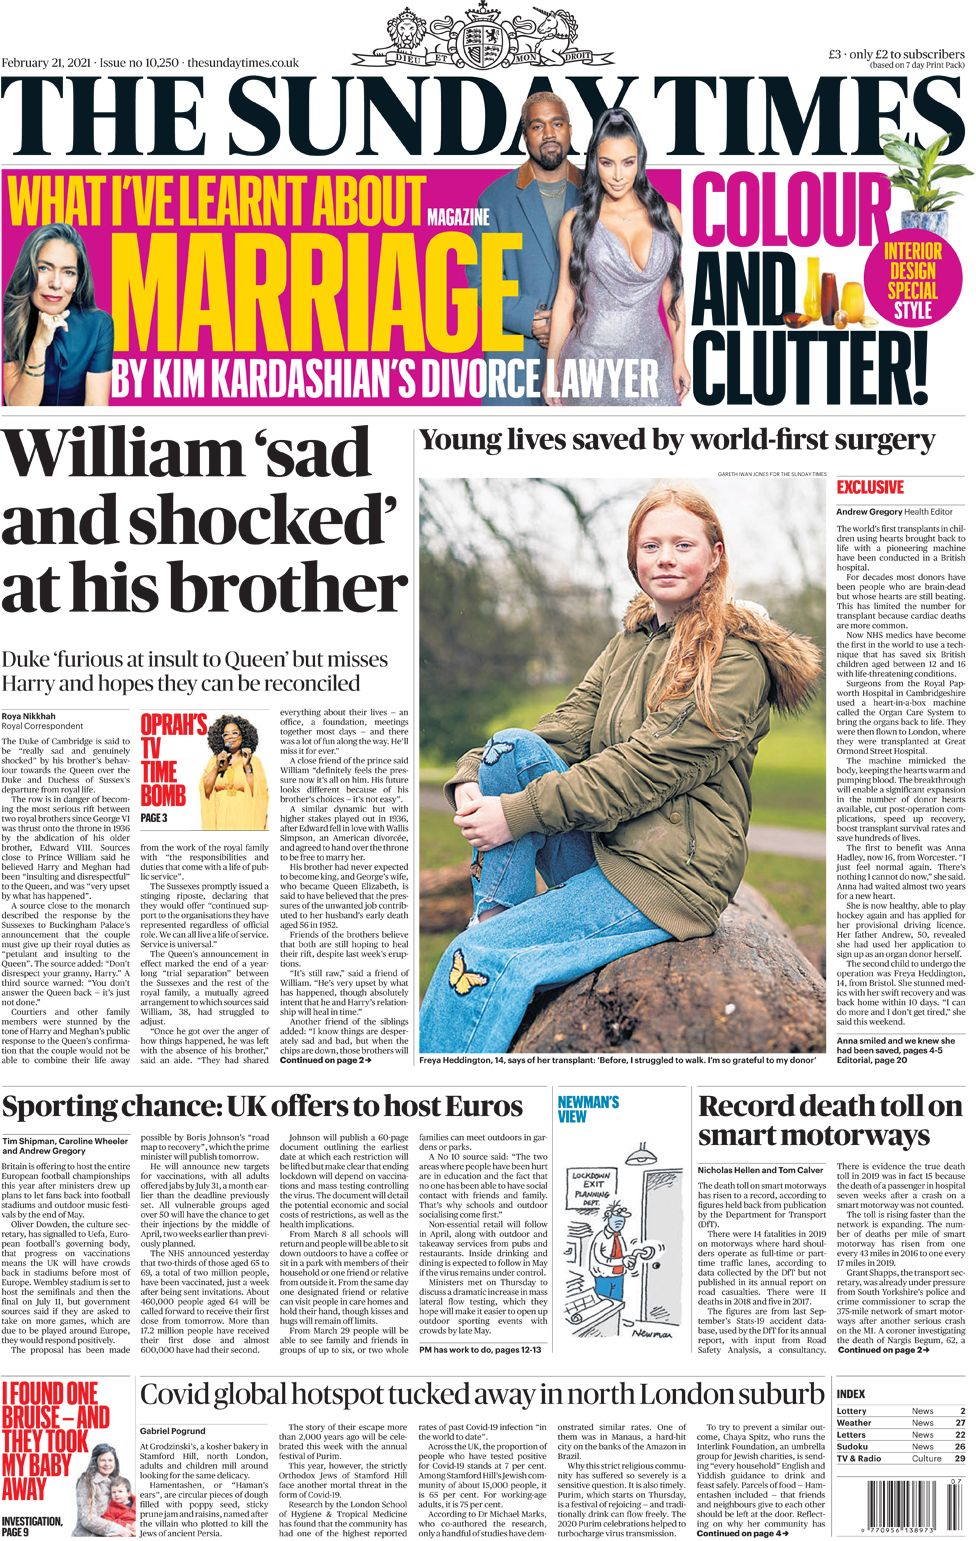 The Sunday Times front page 21 February 2021